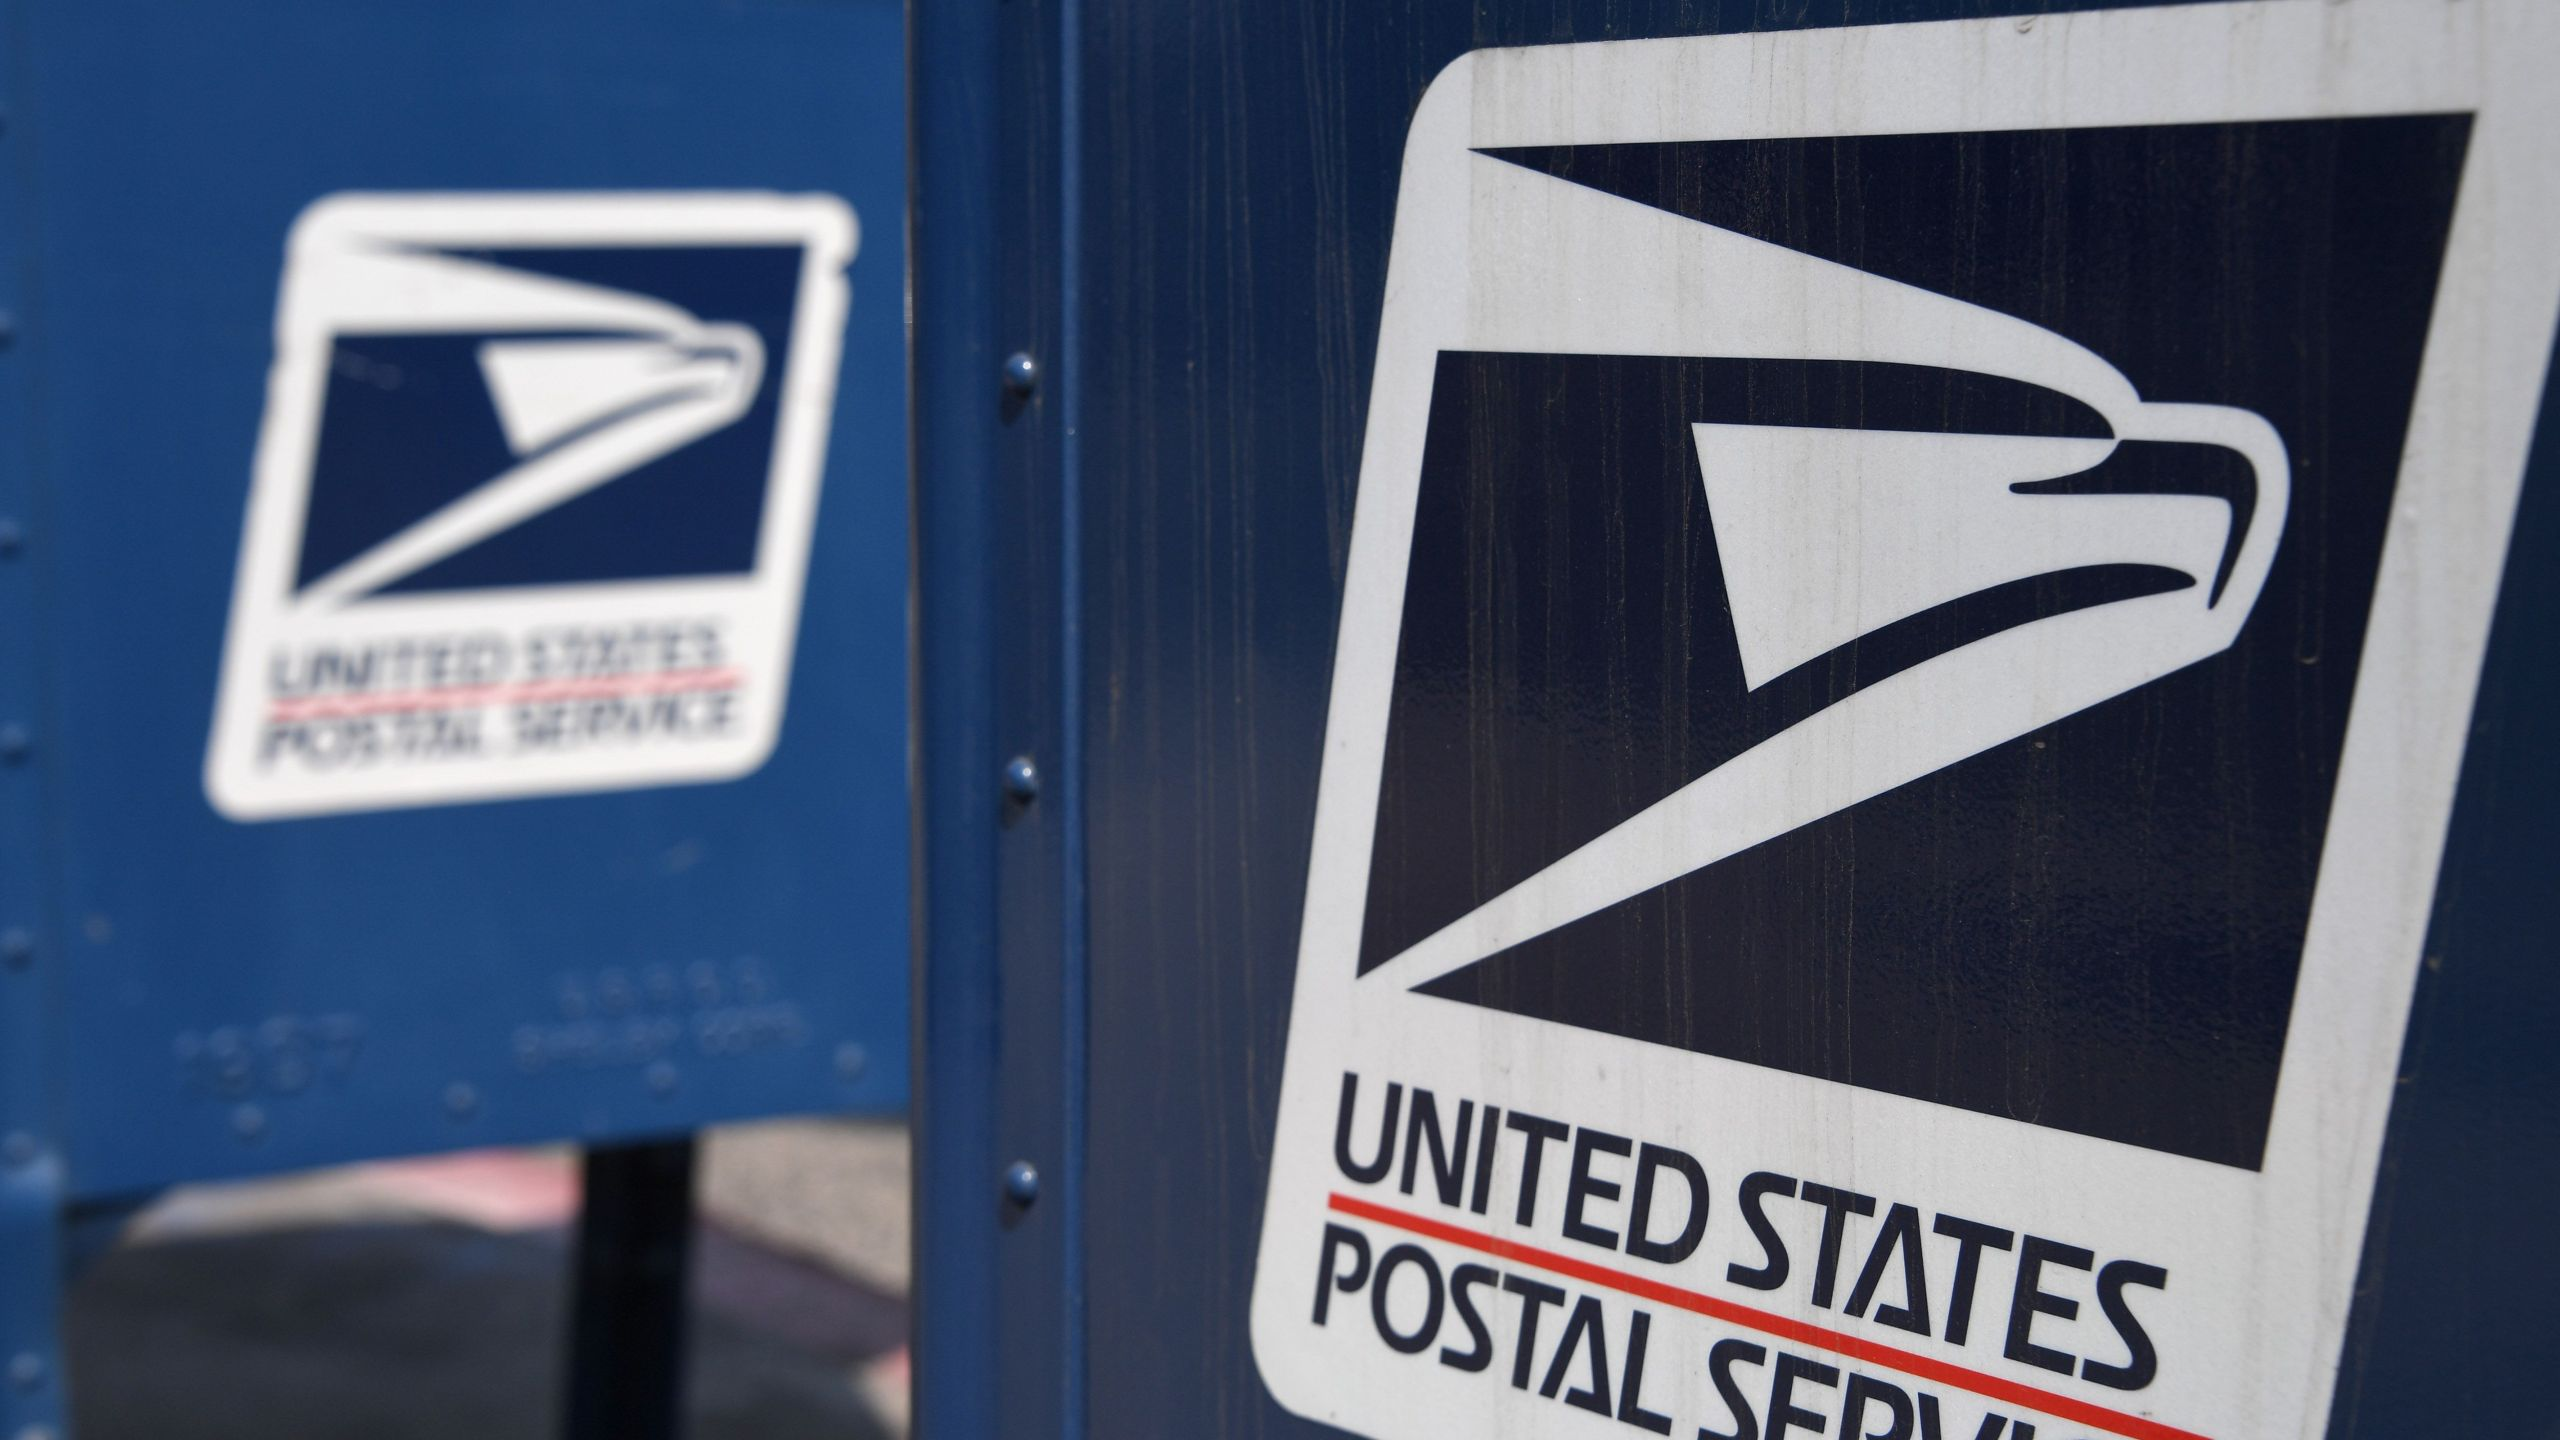 The United States Postal Service logo is seen on a mailbox outside a post office in Los Angeles, California, August 17, 2020. (ROBYN BECK/AFP via Getty Images)